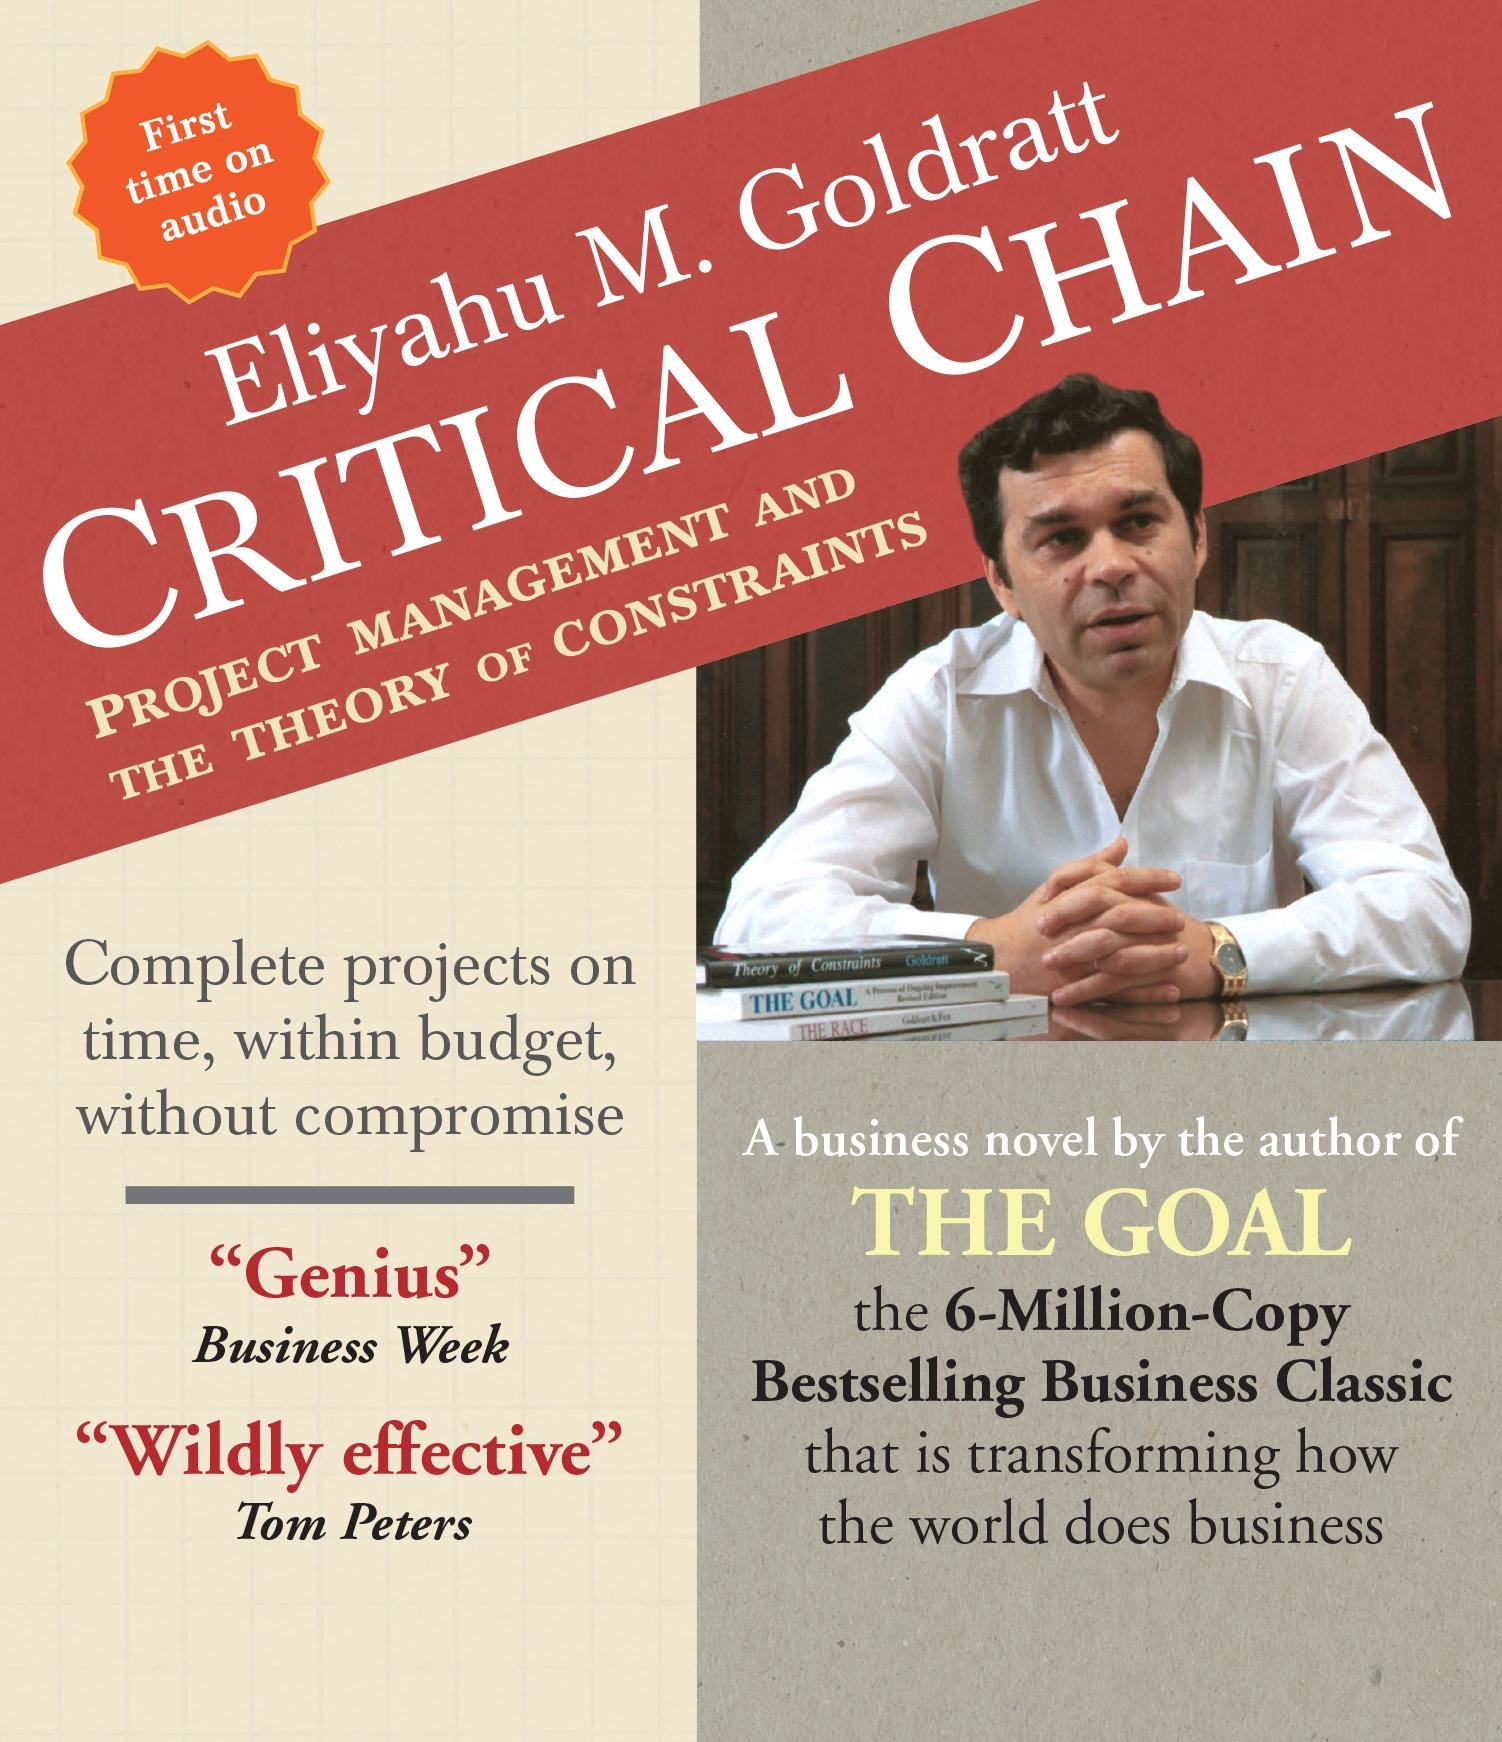 Amazon: Critical Chain: Project Management And The Theory Of  Constraints (9781622314003): Eliyahu M Goldratt, Rick Adamson, Alexander  Cendese,